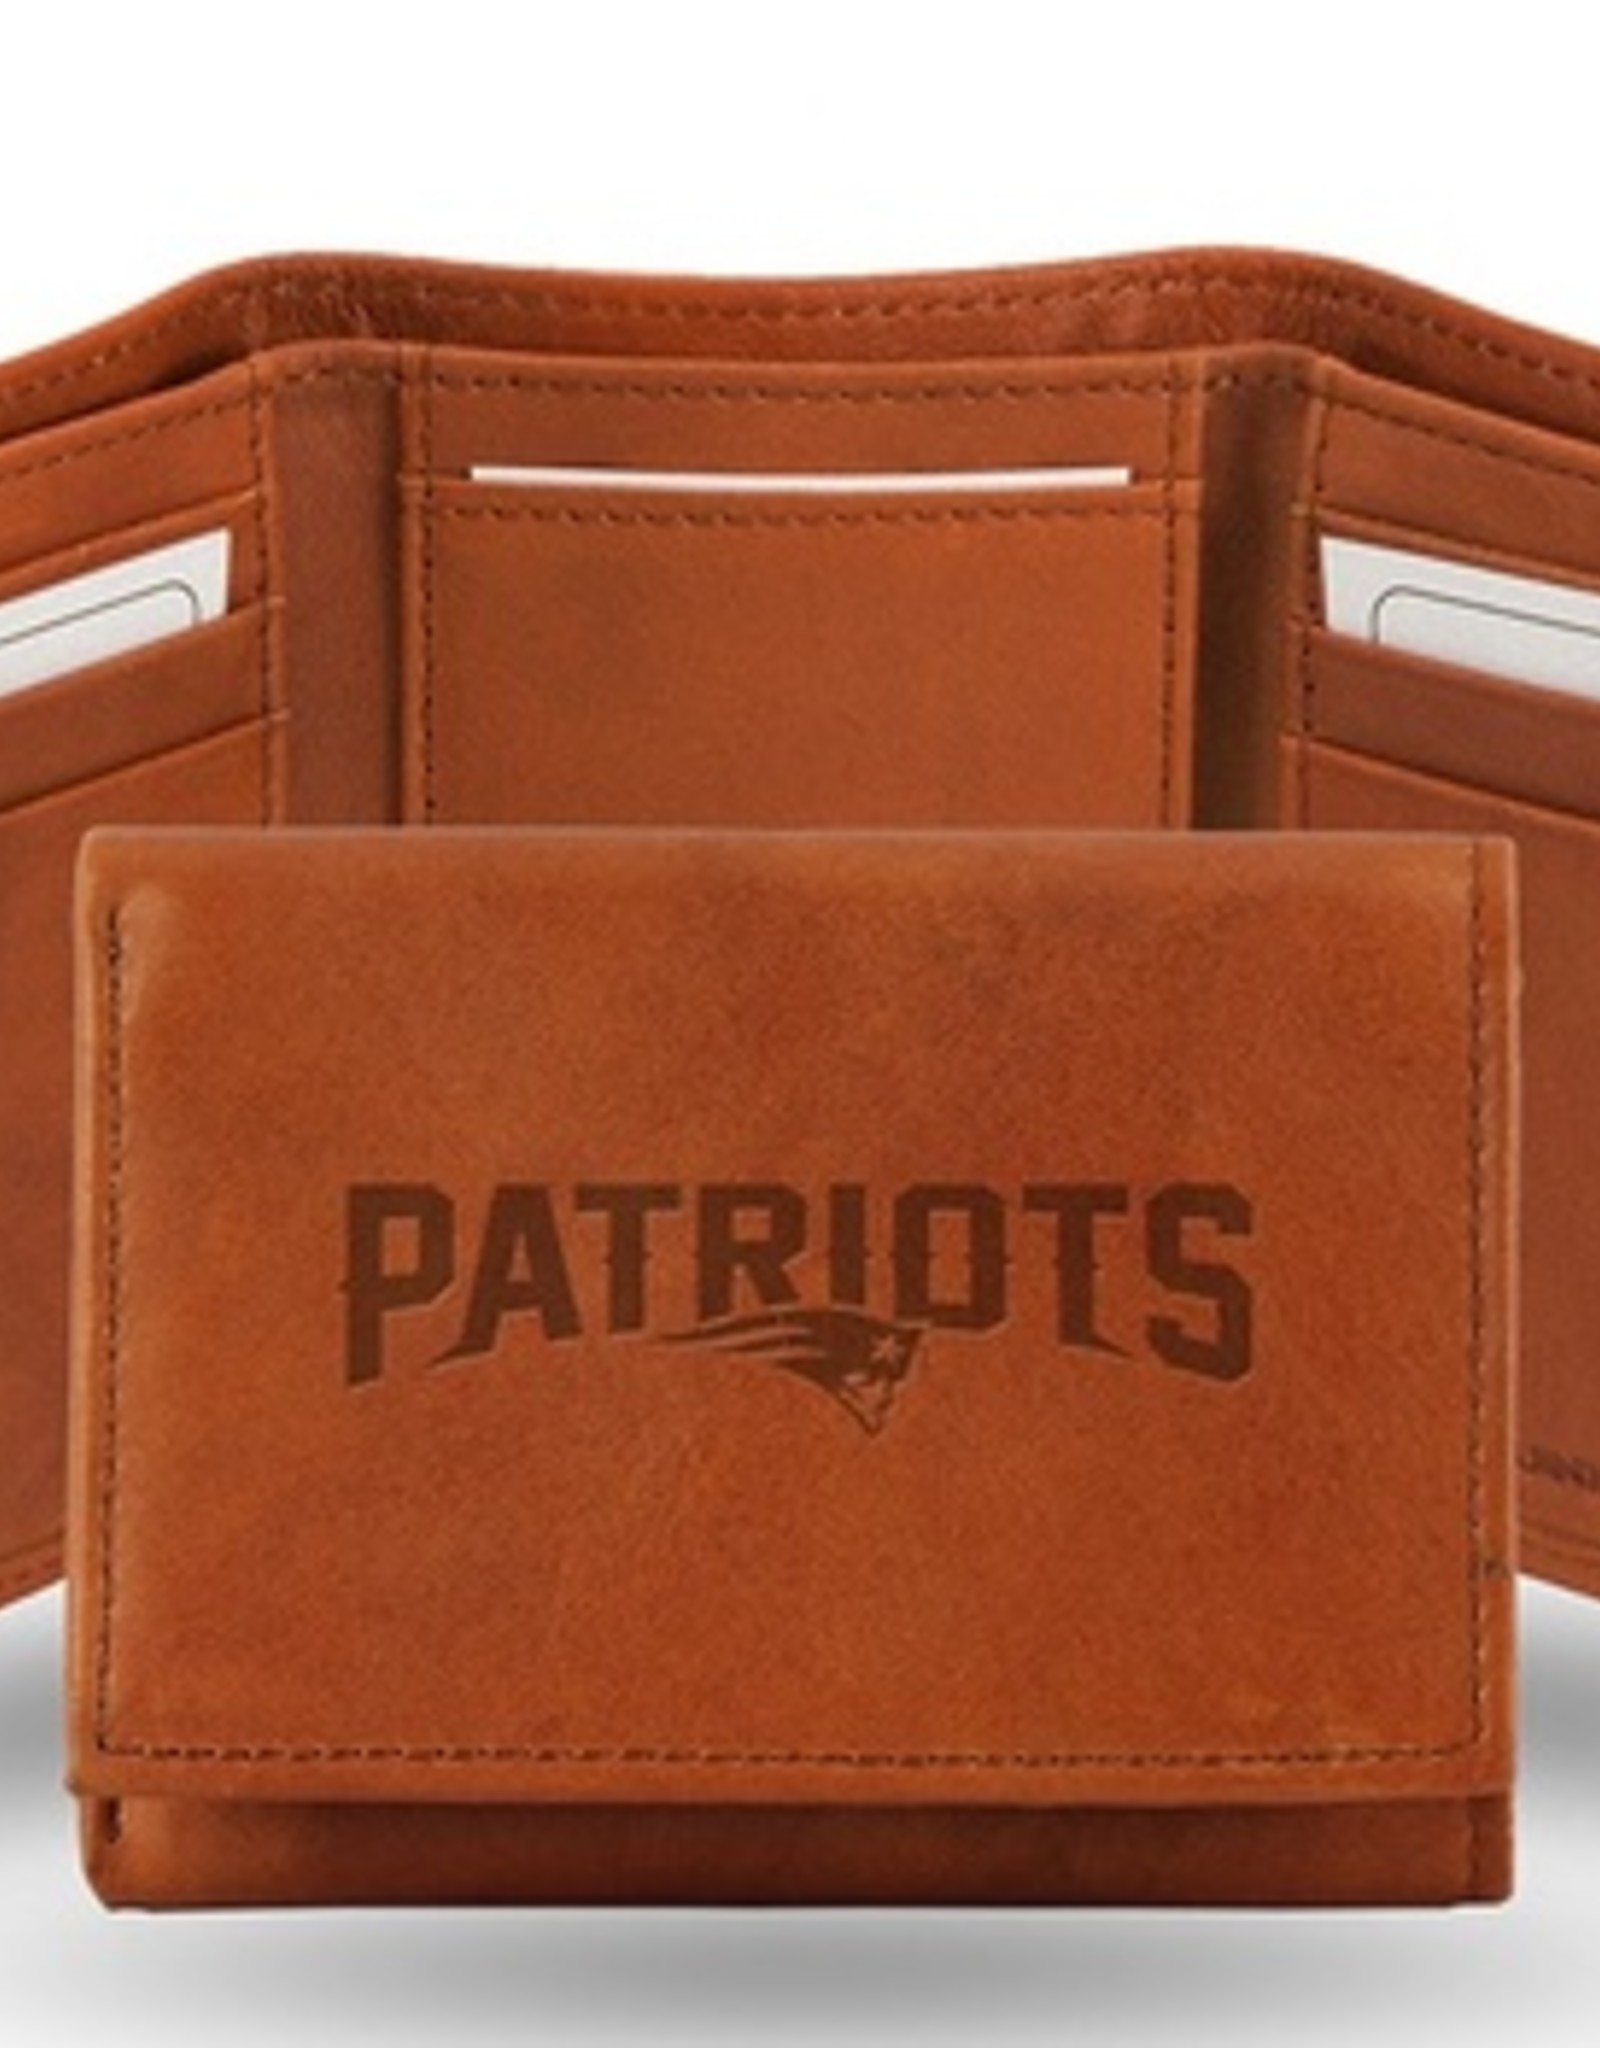 RICO INDUSTRIES New England Patriots Genuine Leather Vintage Trifold Wallet